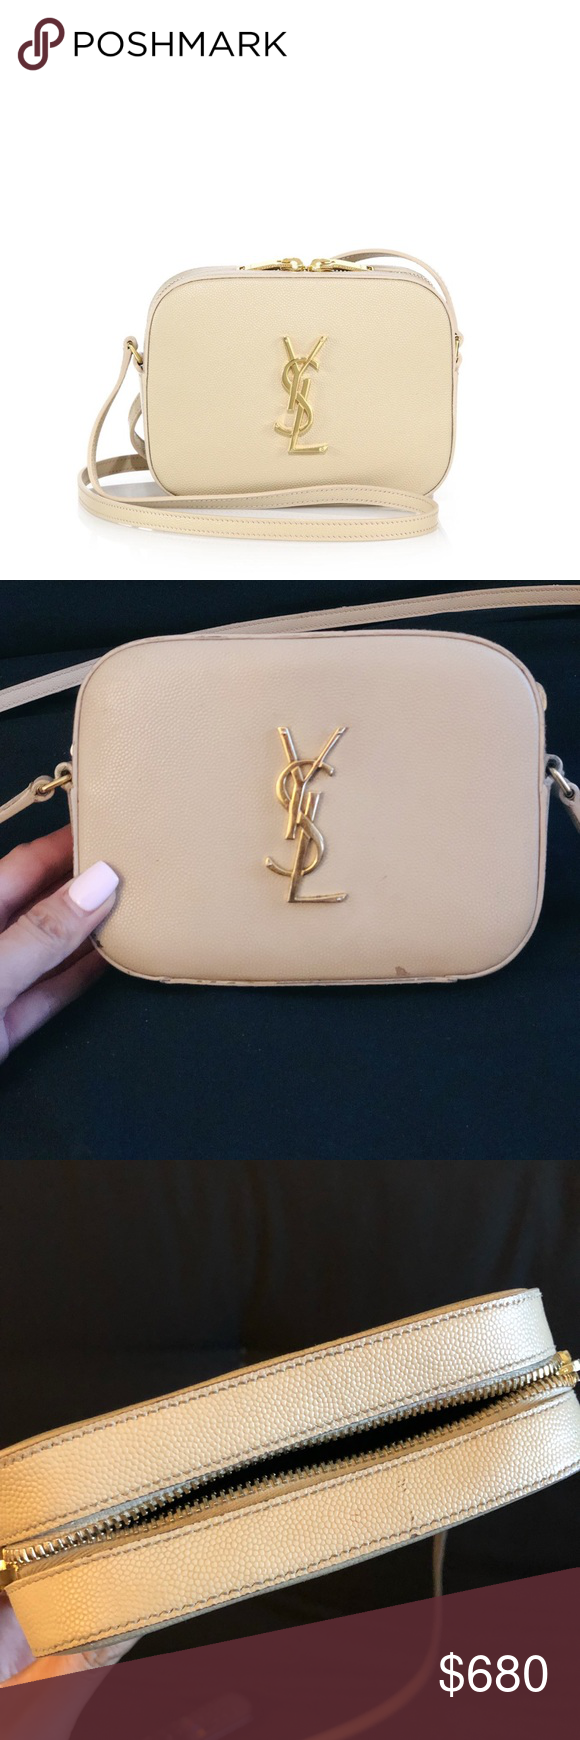 cc37cb44c26f35 AUTH YSL monogram camera crossbody Has some minor wear and tear (please  pictures) as it's been preloved! No trades. -$100 off through Vinted.